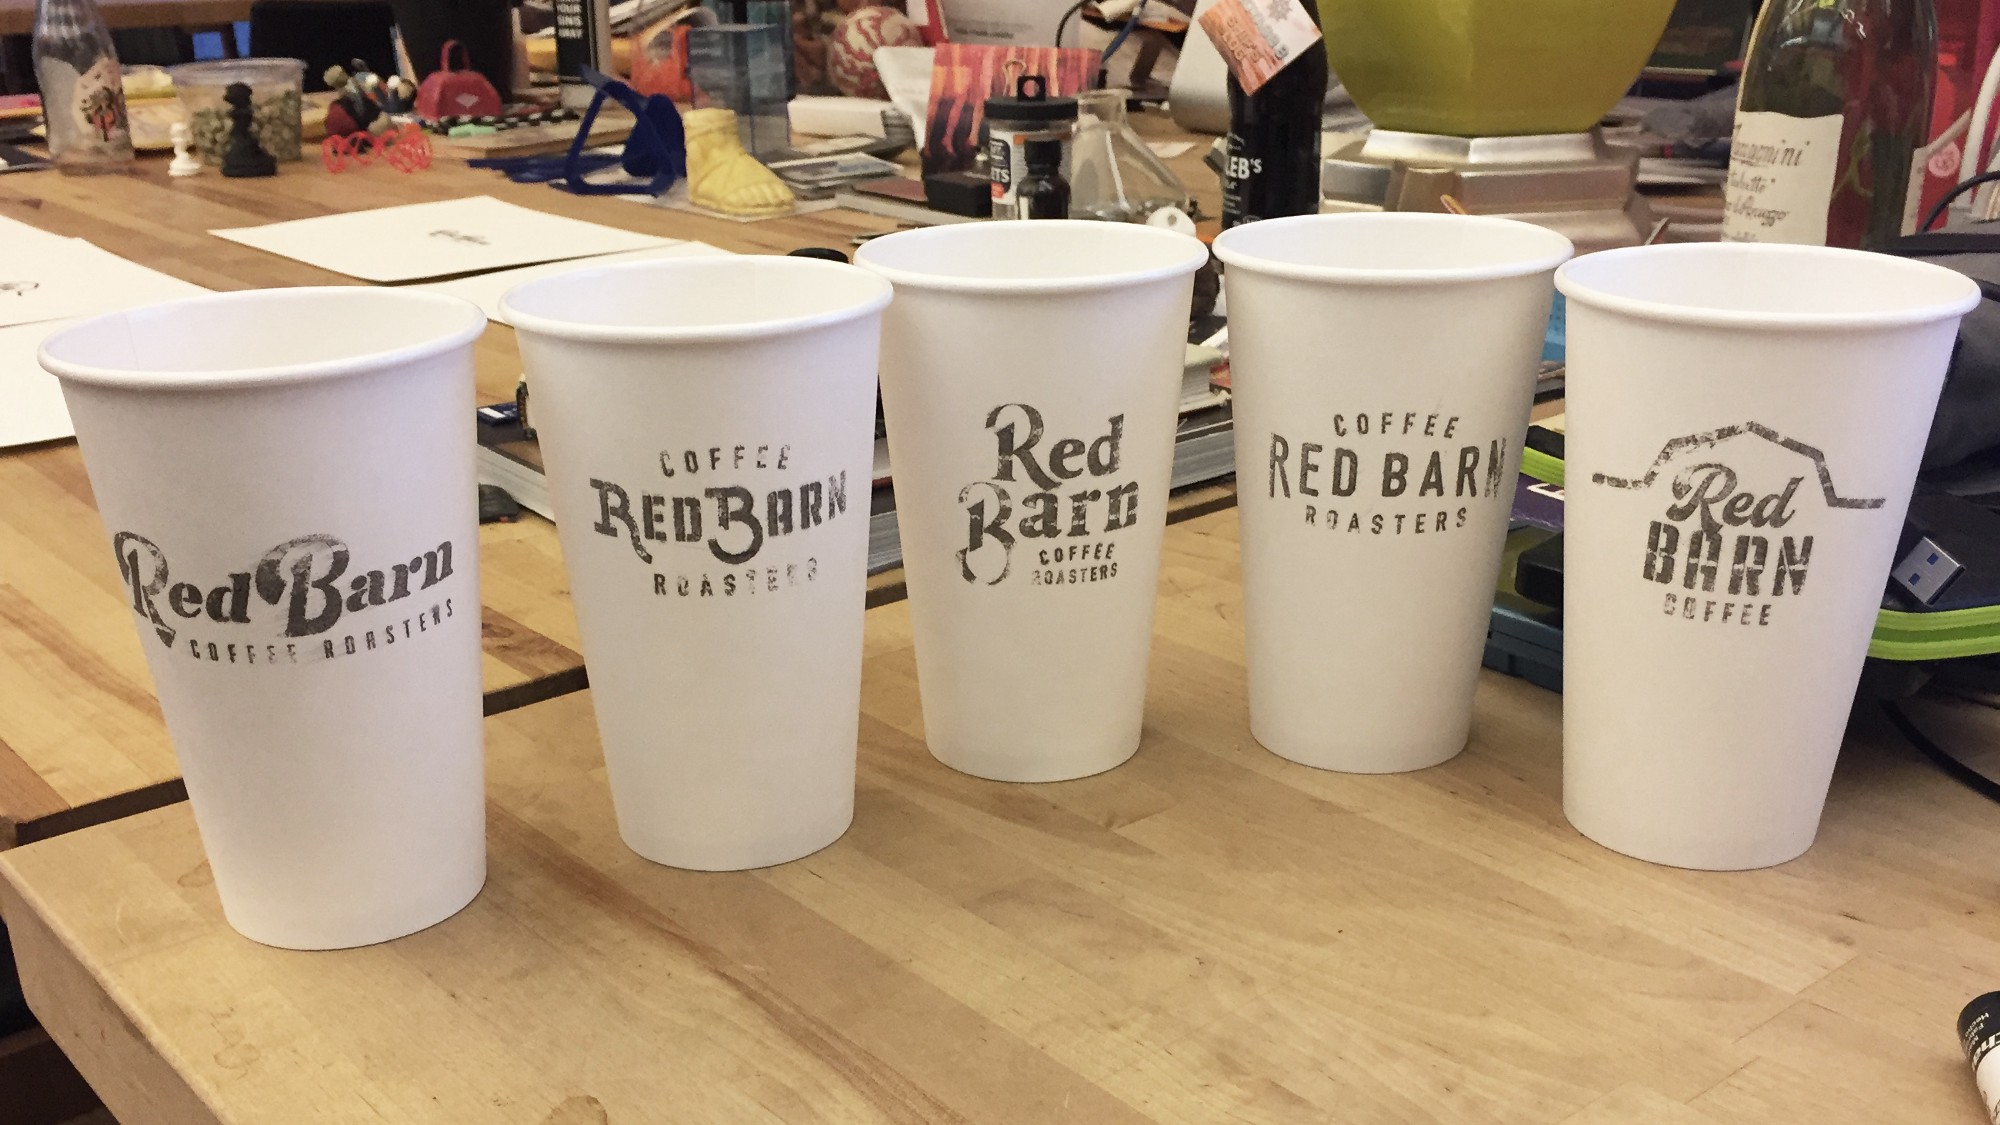 Adam presented his first round of logos on coffee cups.